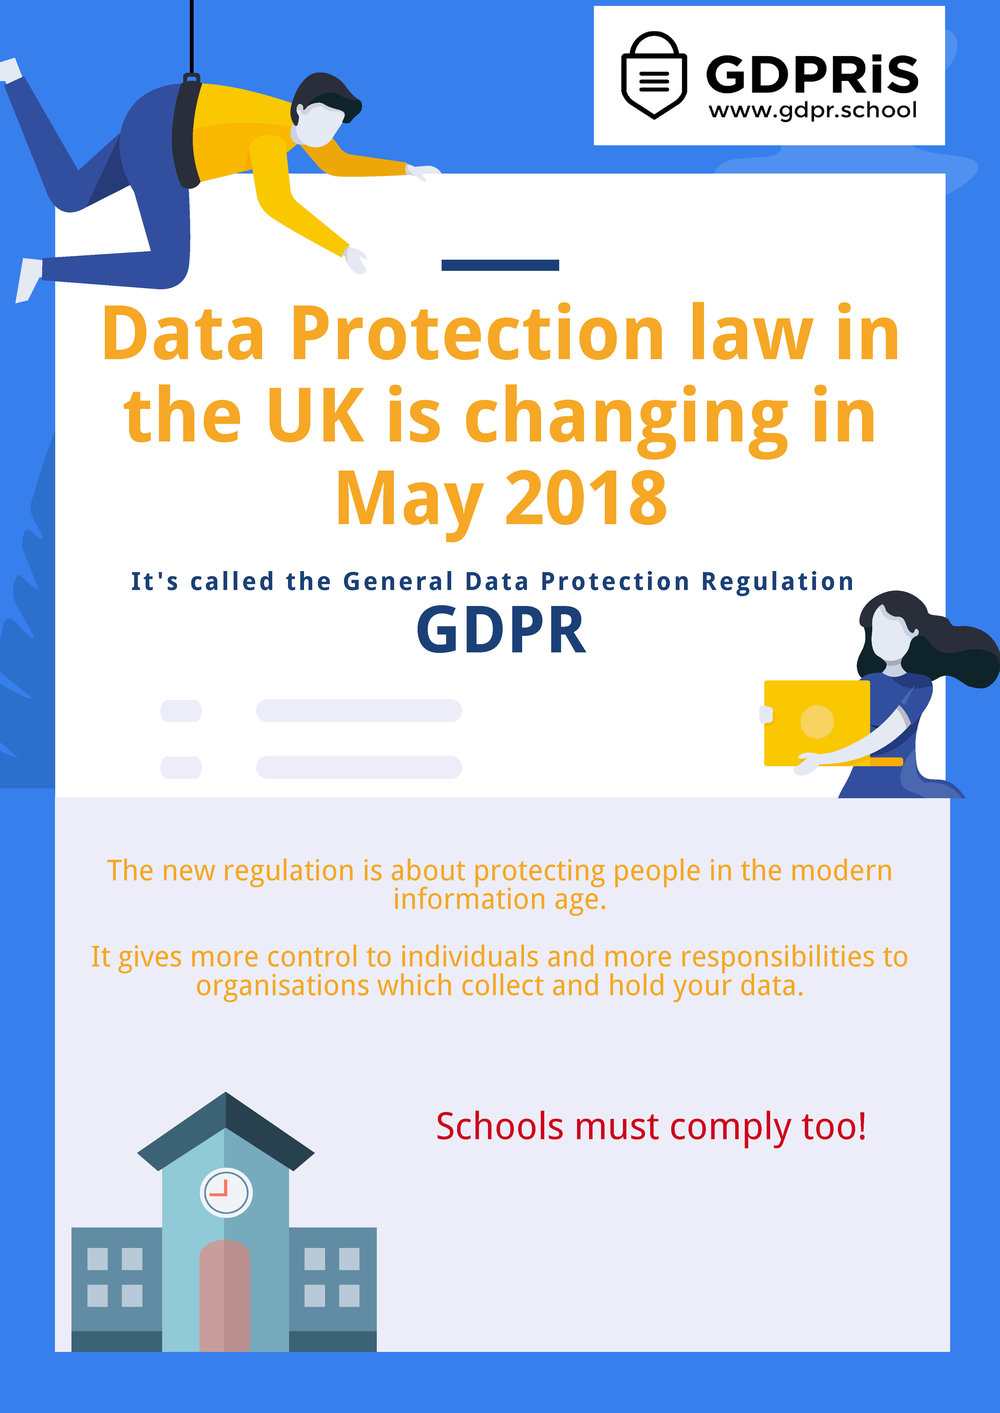 gdpris-gdpr-infographic-parents[1]-1.jpg